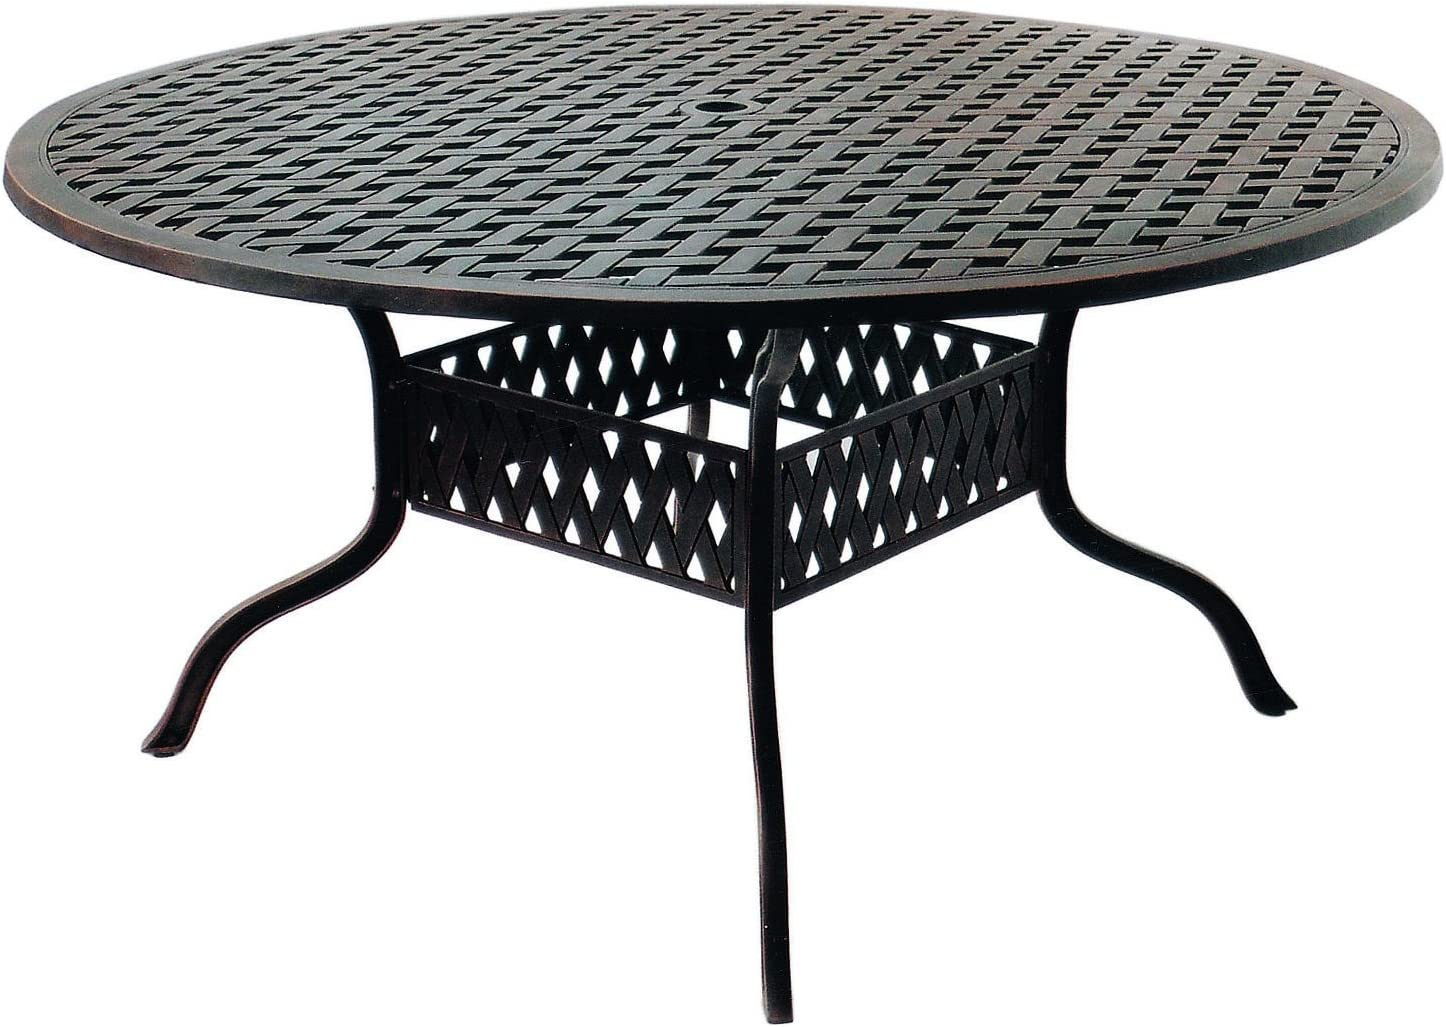 Darlee A DL30-D Series 30 Dining Table, 60 Round